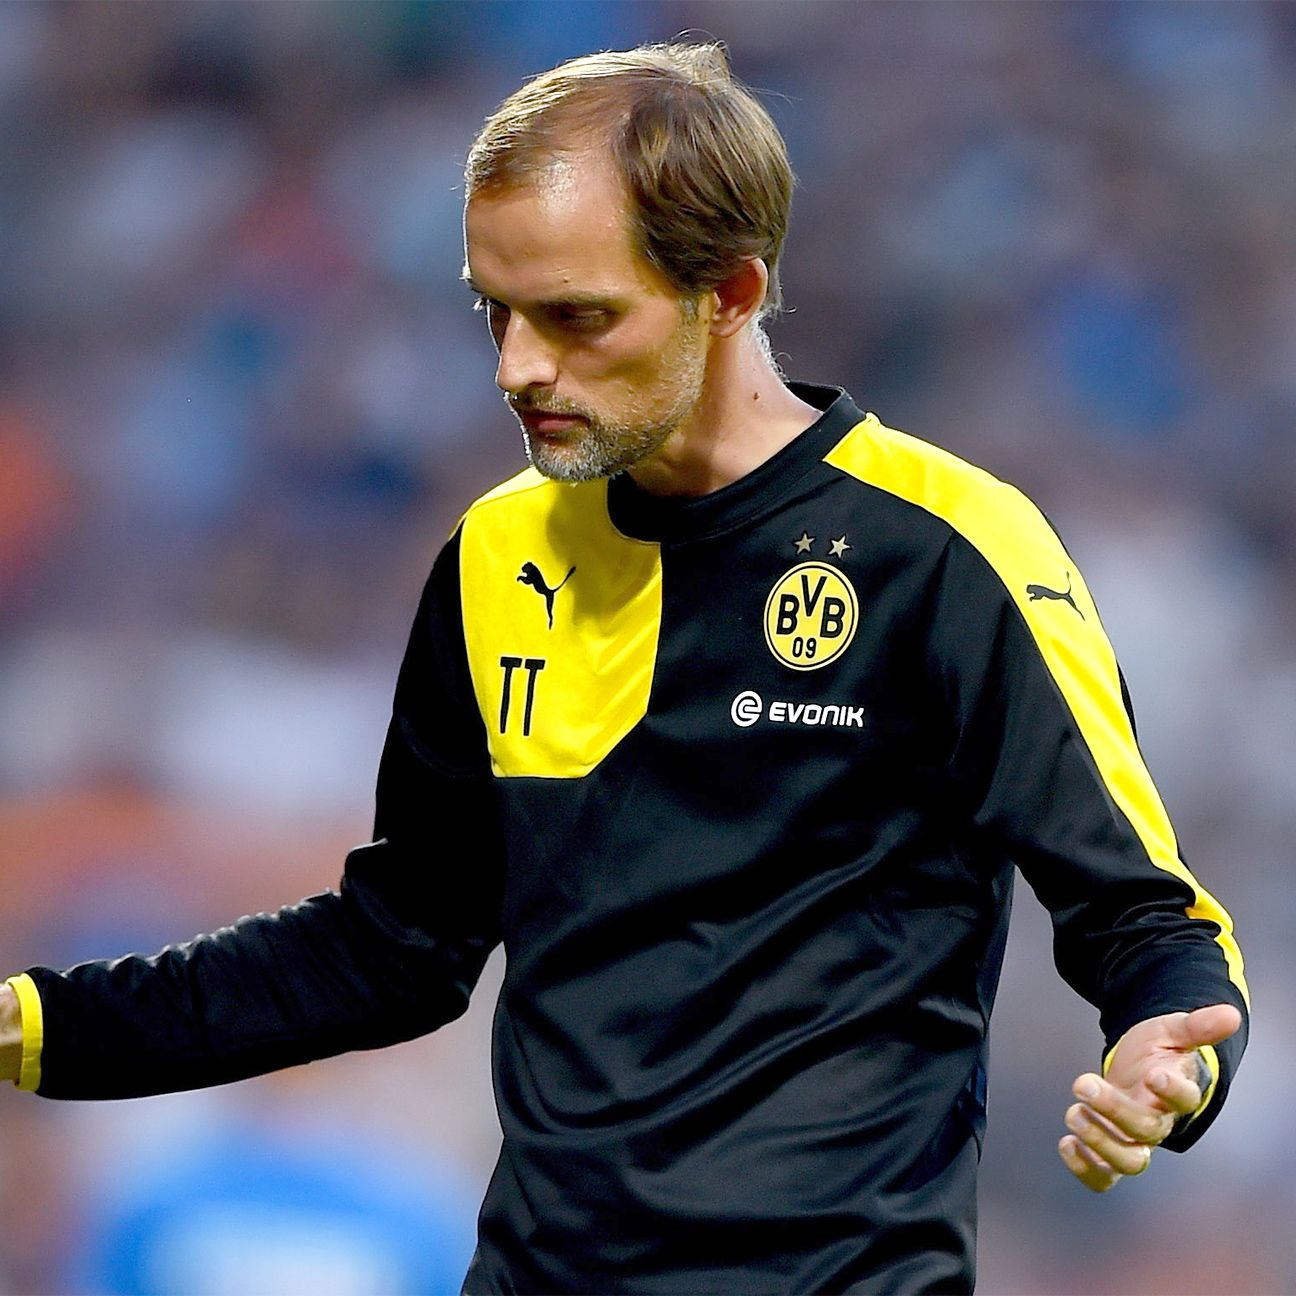 Thomas Tuchel's Borussia Dortmund kick off their 2015-16 season on July 30th in the third qualifying round of the Europa League.